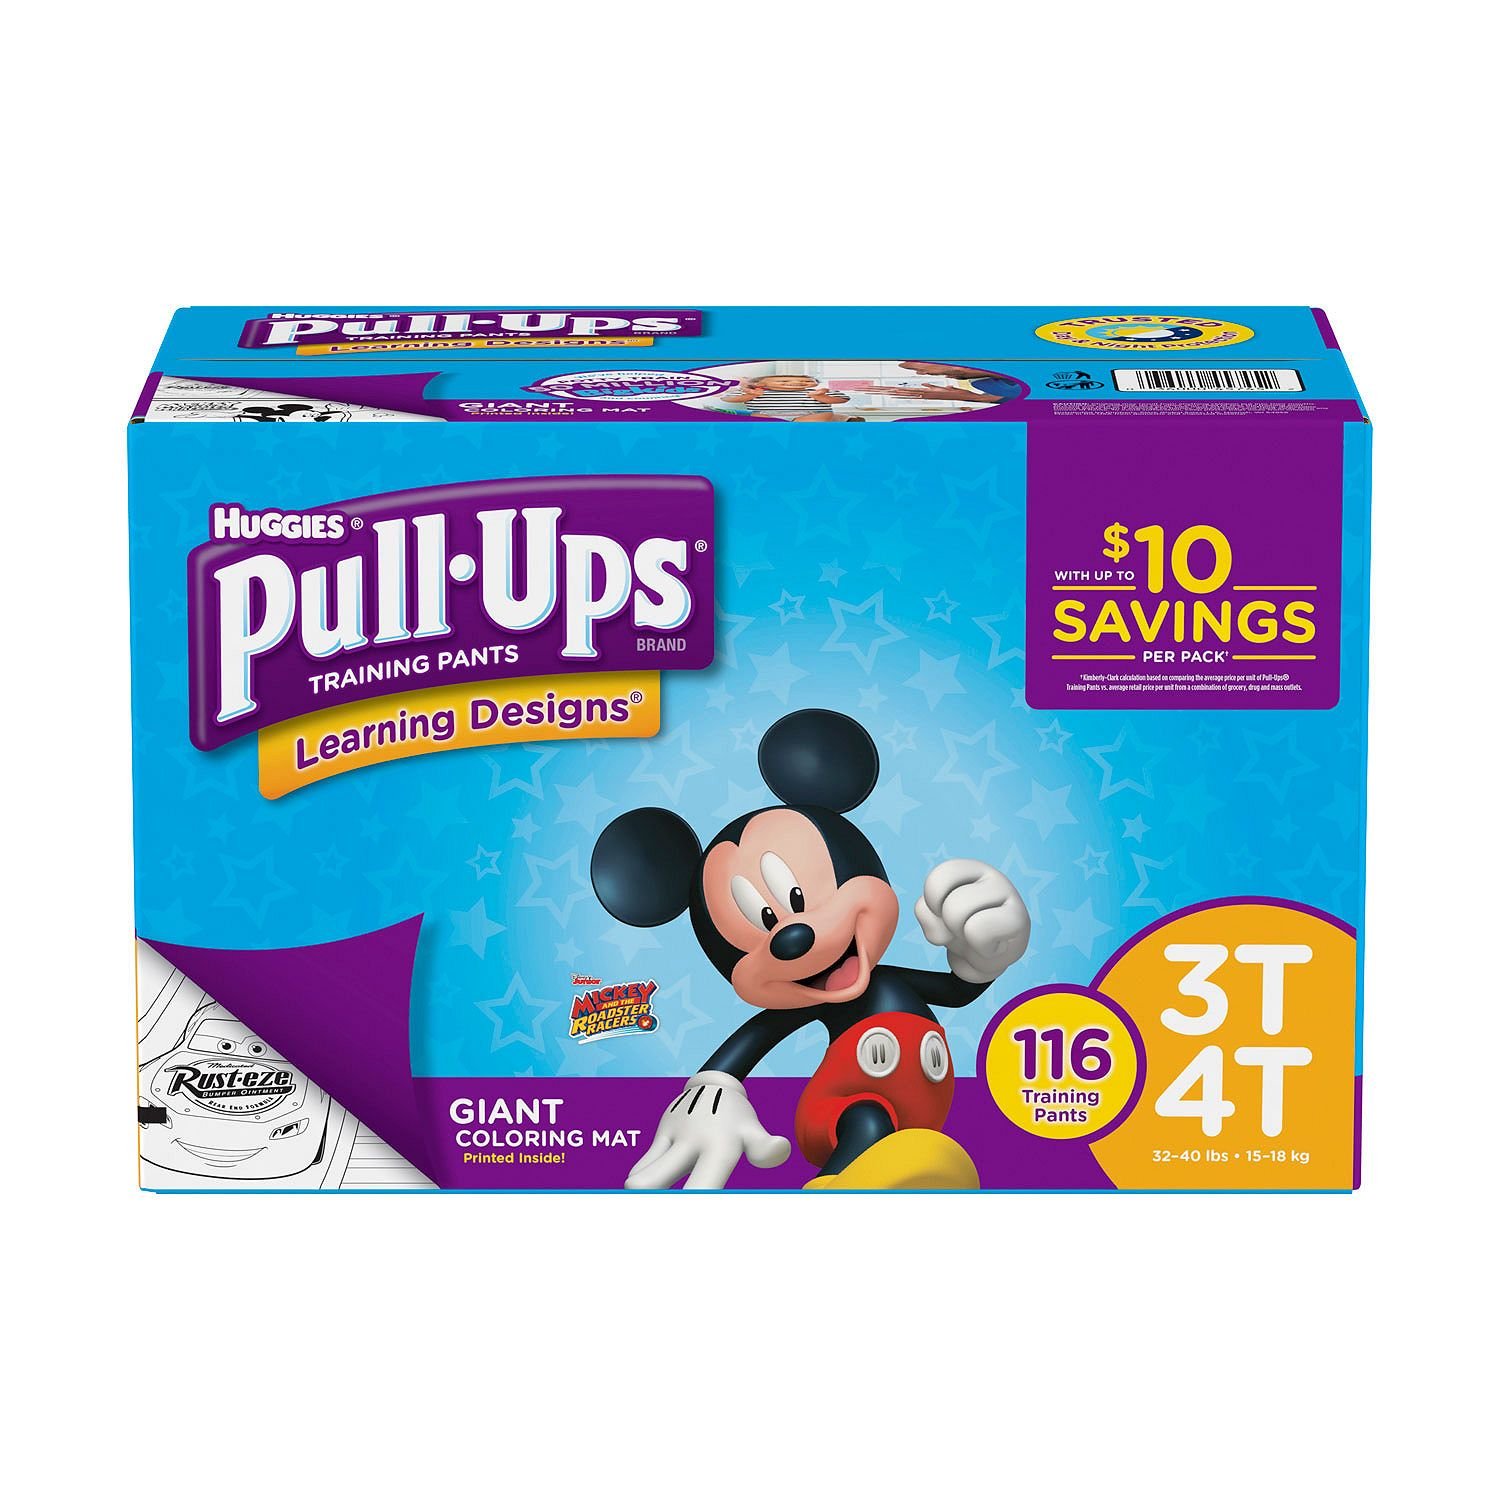 Huggies Pull-Ups Training Pants For Boys - Diaper Size 3T/4T Boys ( 116 Ct.) - (Comfortable & Soft Diaper at a Wholeprice)